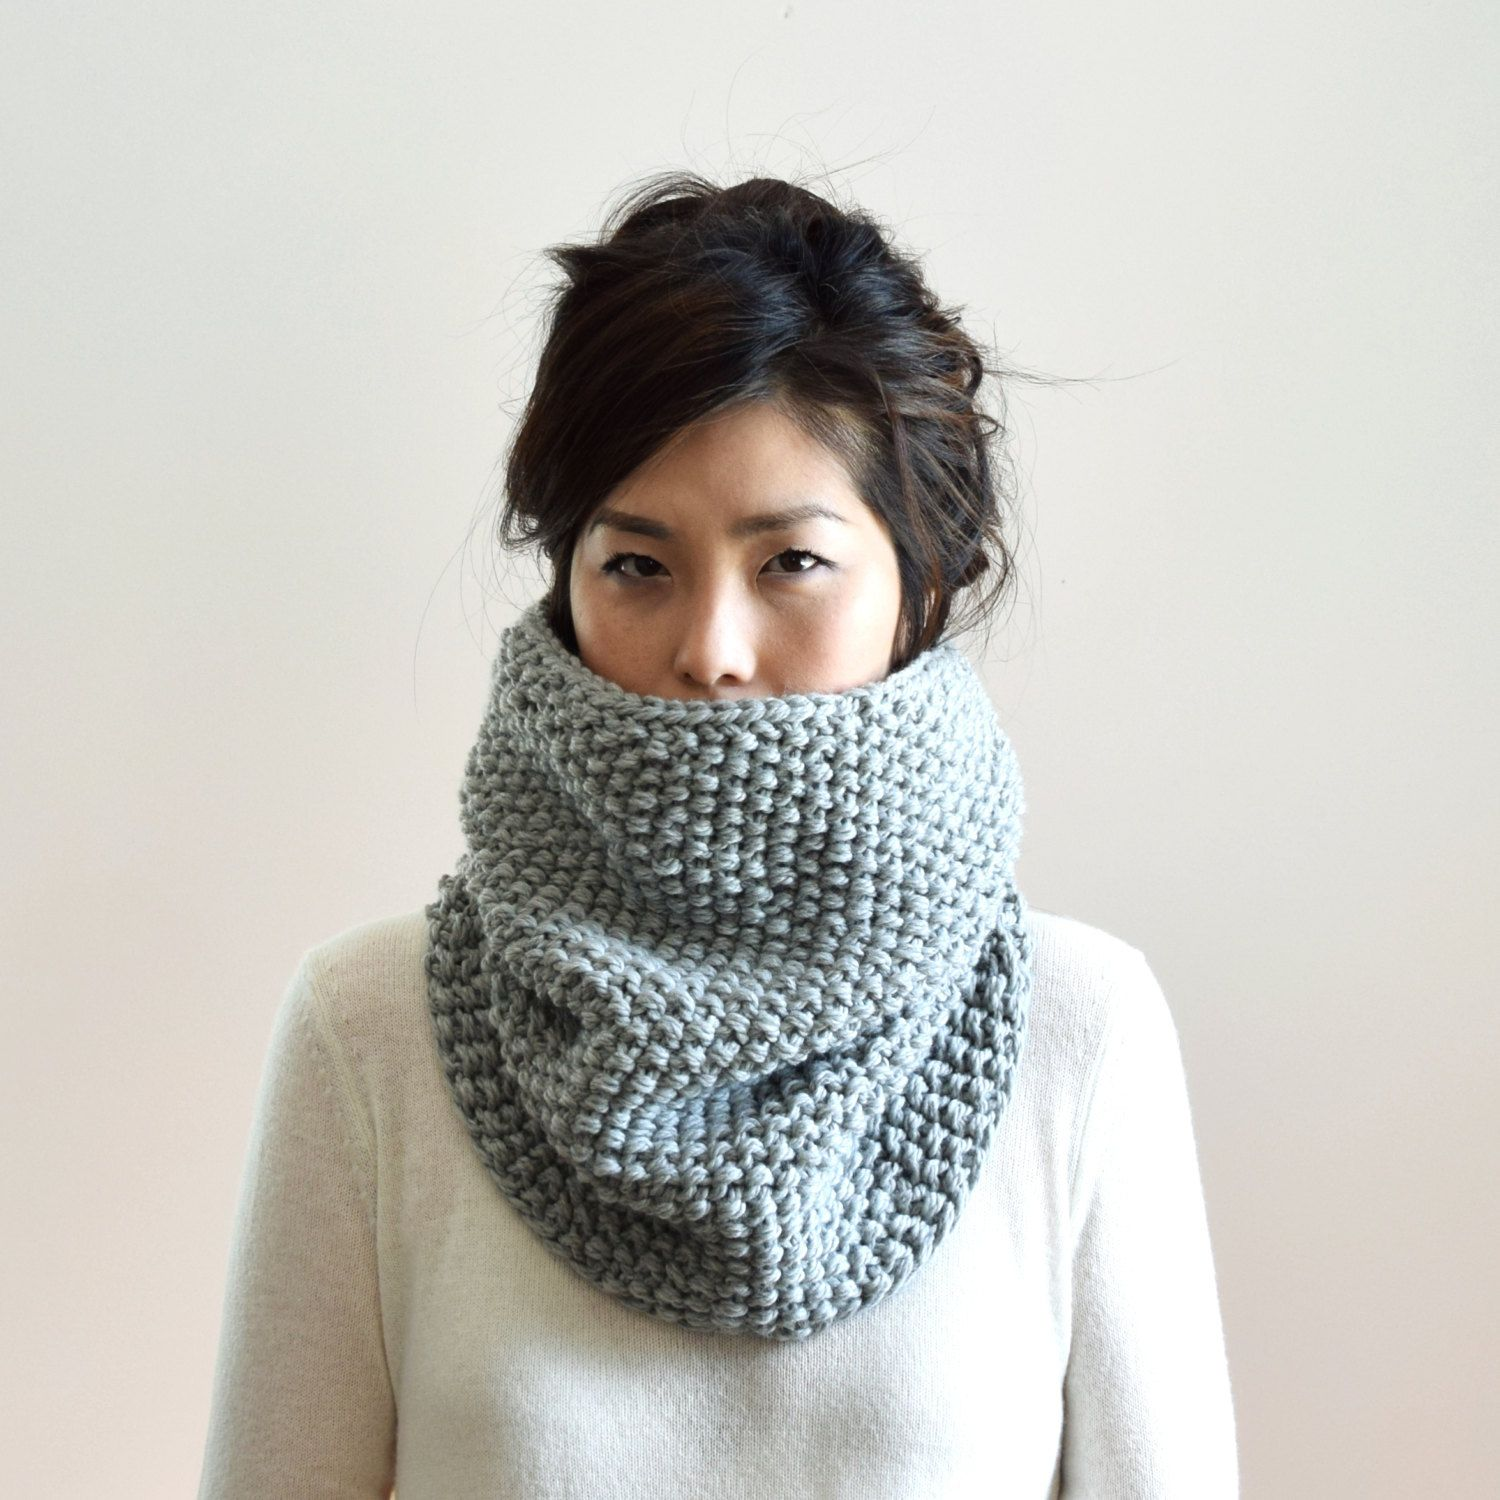 Merino Chunky Knit Cowl Mens Cowl Infinity Scarf Gray By Irismint